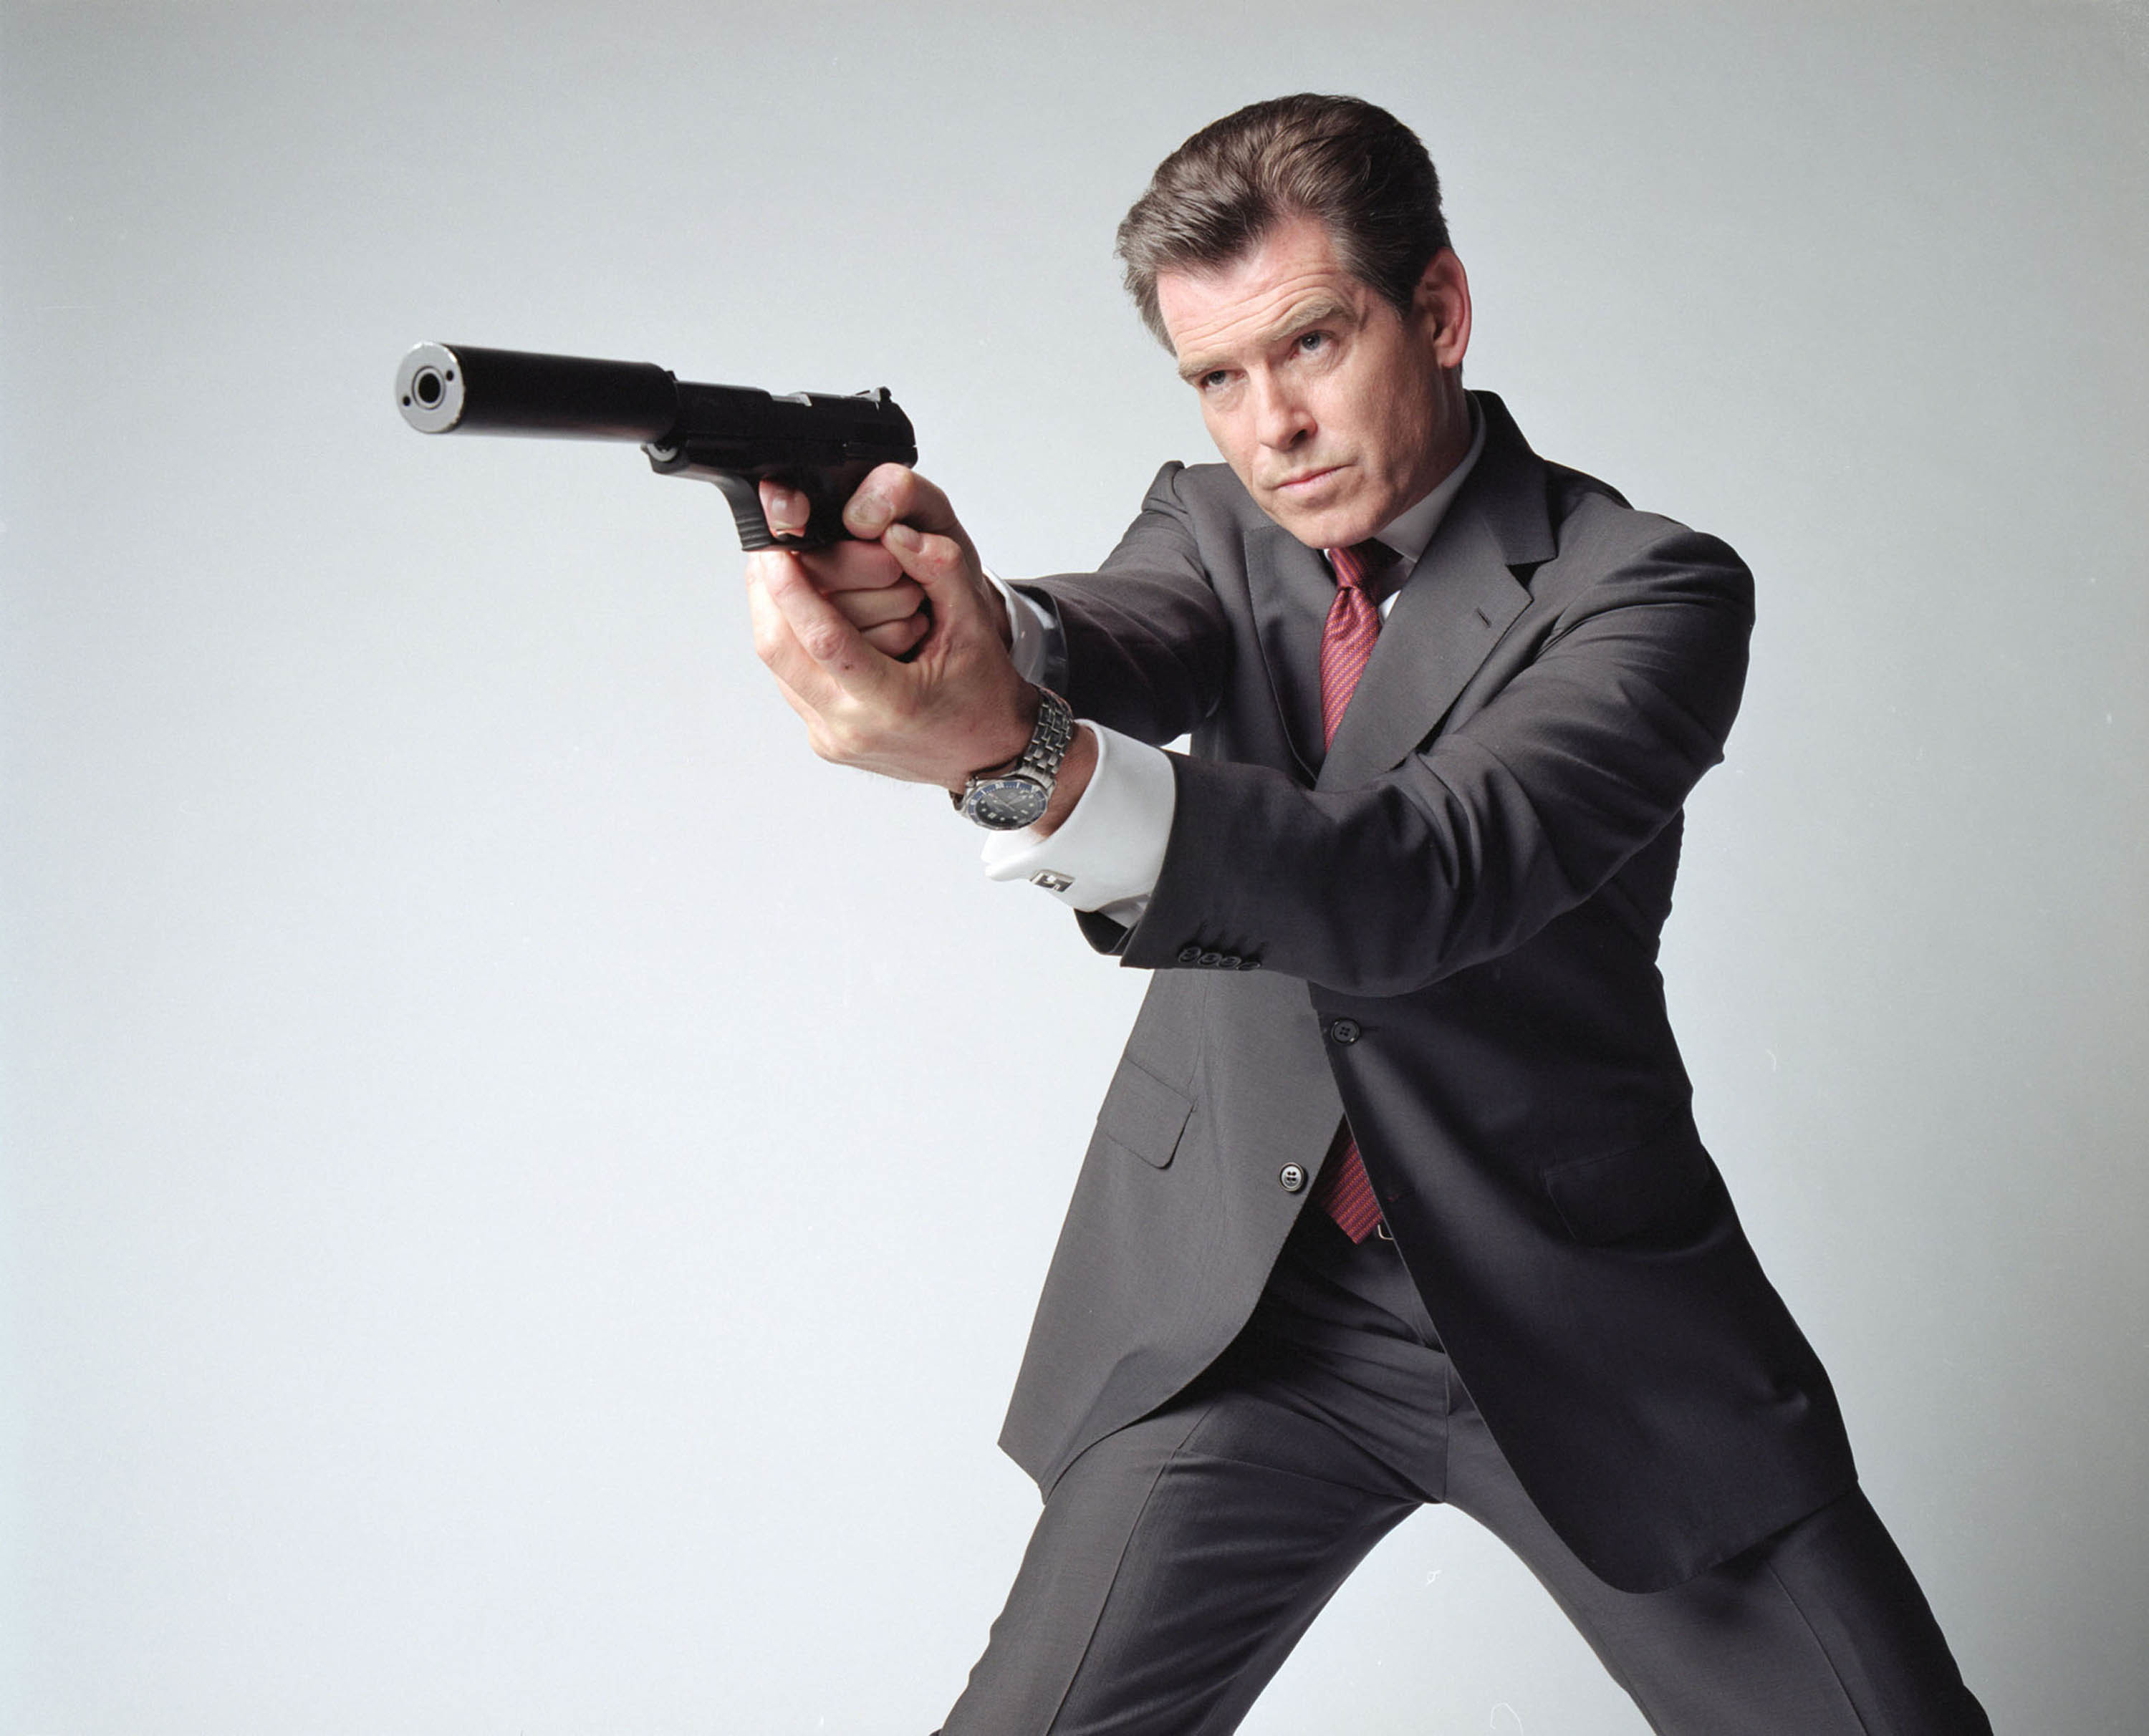 James bond pierce brosnan HD Wallpaper